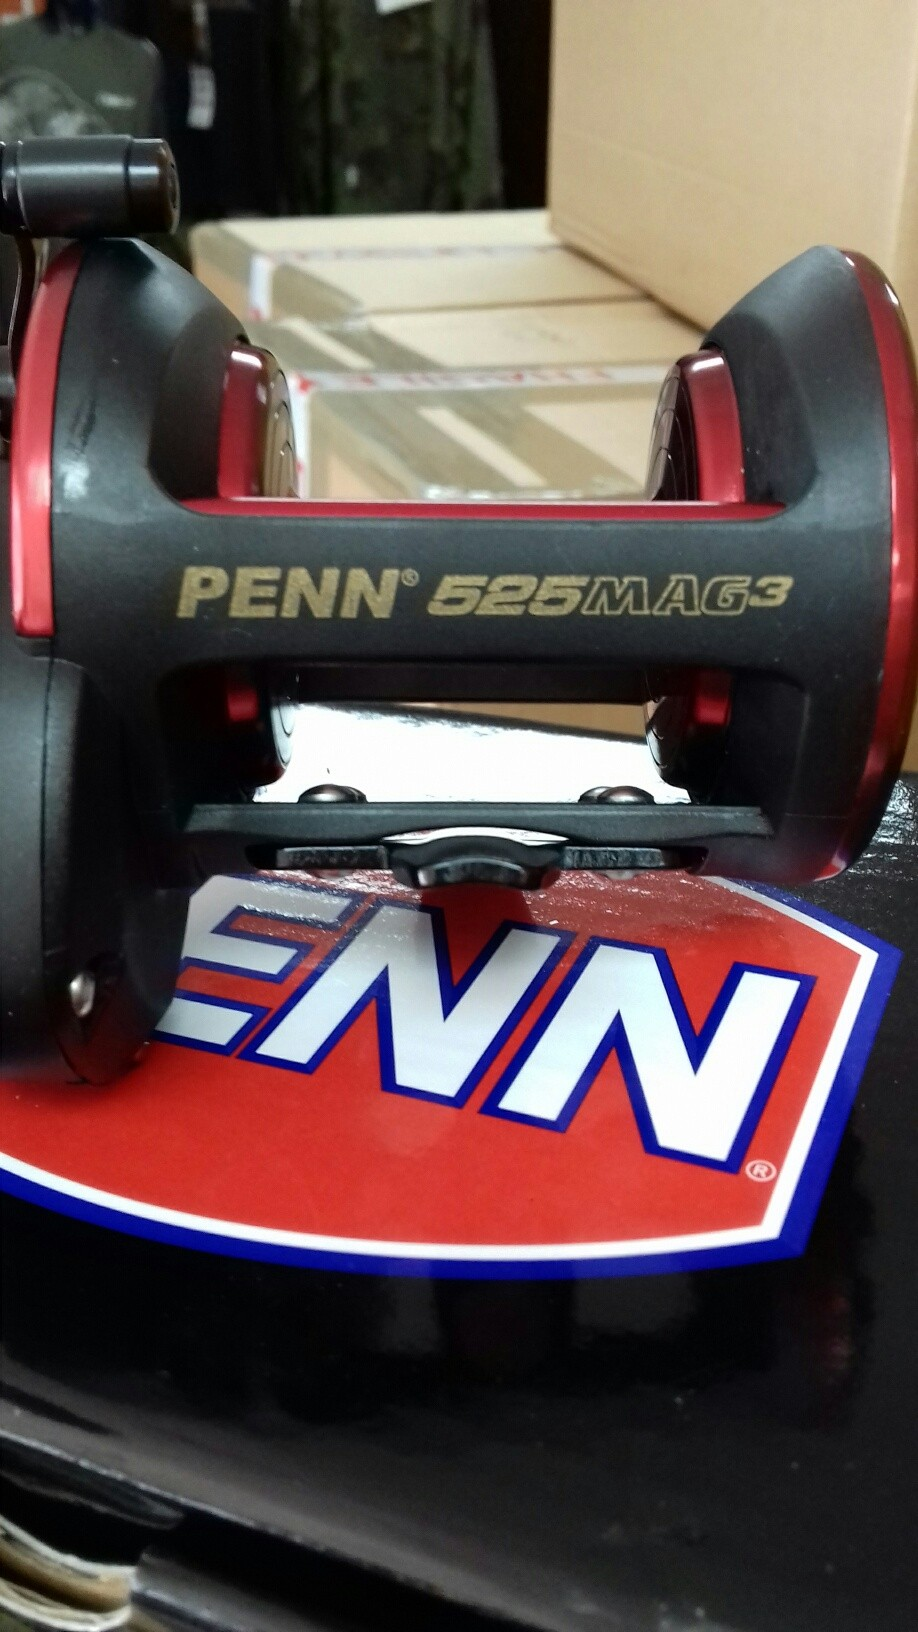 the brand new Penn 525 Mag3 with its stainless steel gear upgraded HT-100 Drag washers it is sure to prove a winner this season